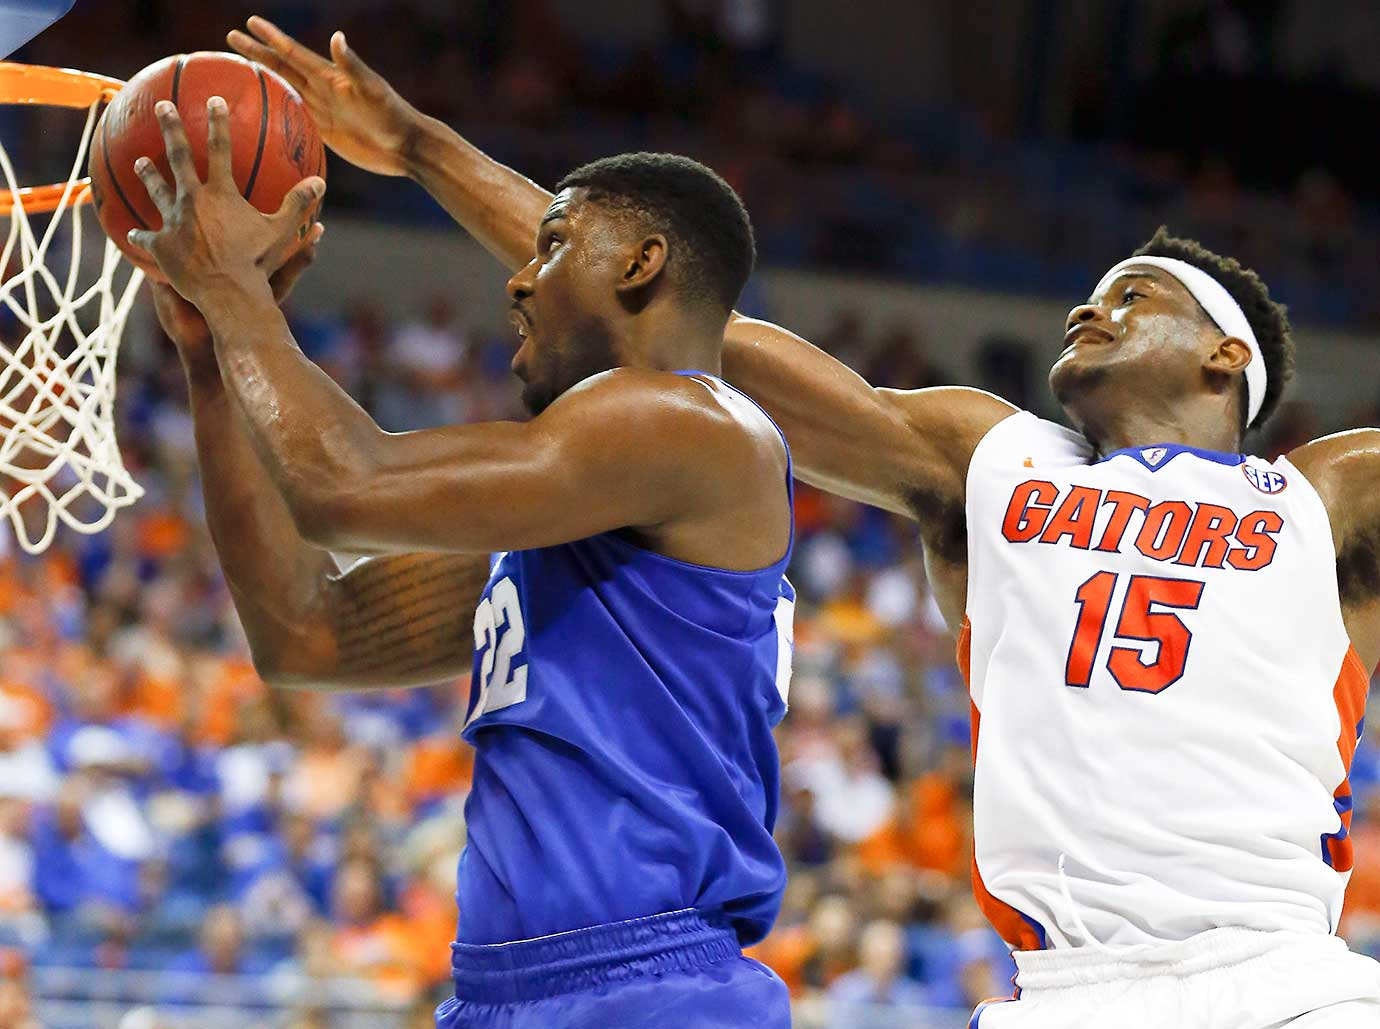 Kentucky's Alex Poythress scores on a drive past Florida center John Egbunu.